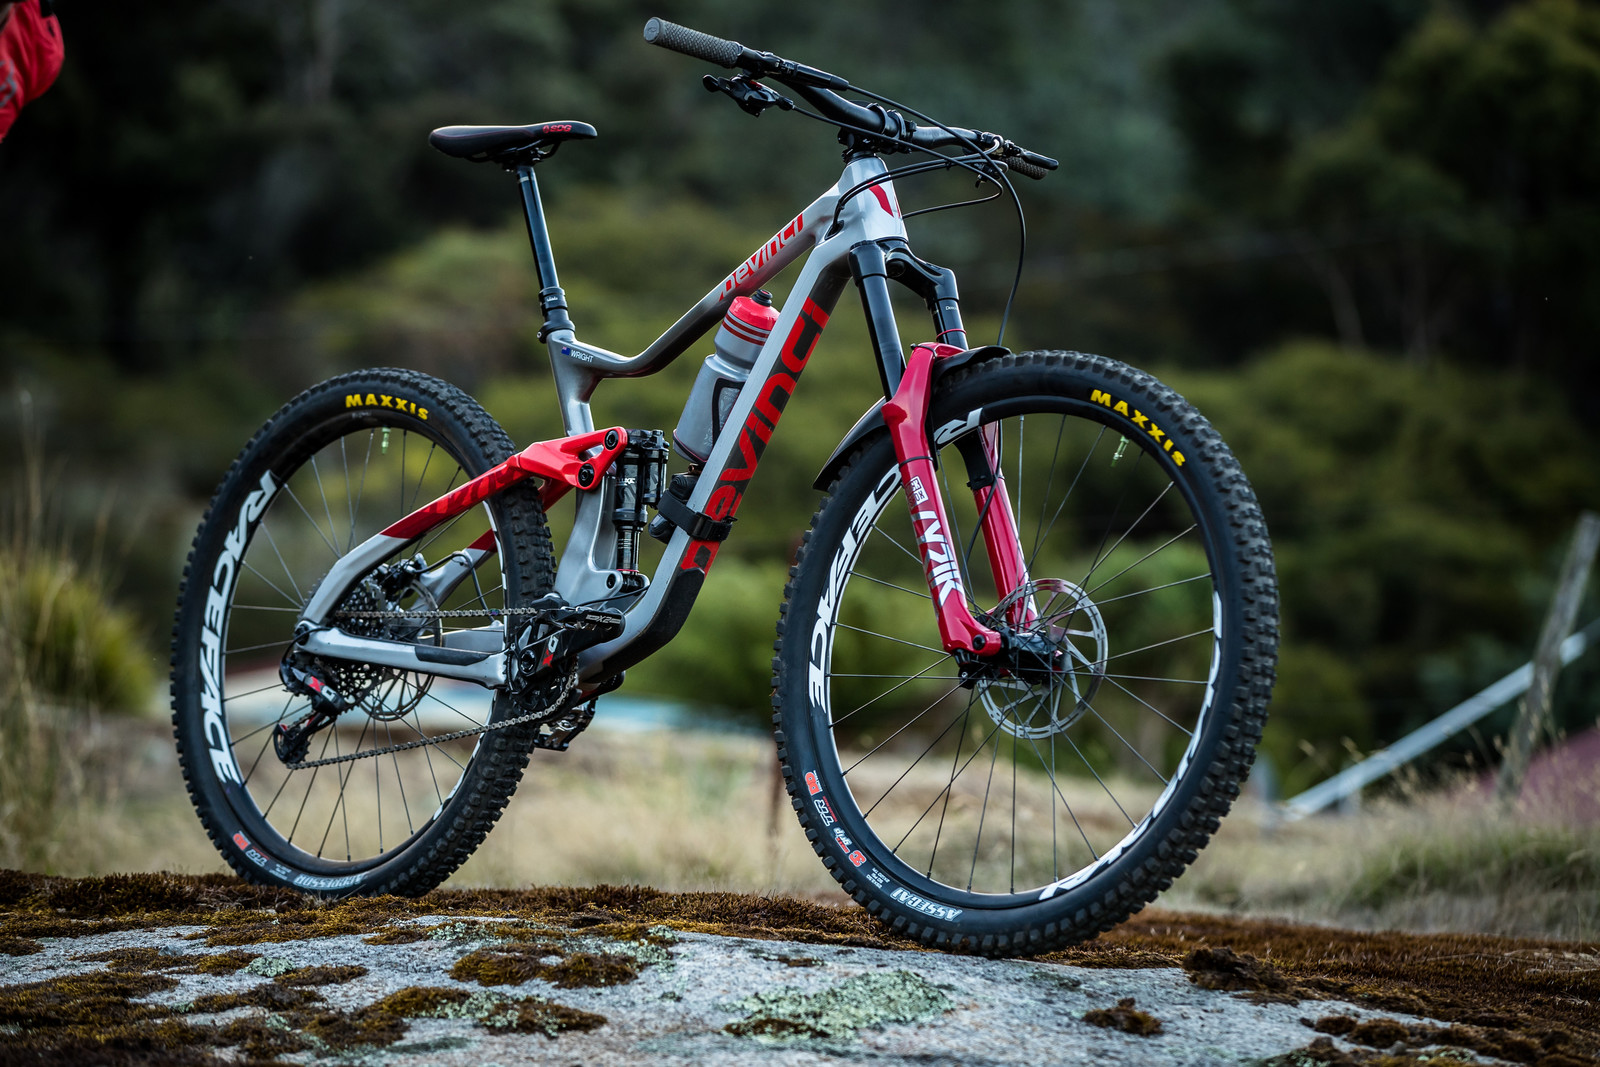 What's Stock, What's Not - Keegan Wright's Devinci Troy for Tasmania - What's Stock, What's Not - Tasmania Enduro World Series - Mountain Biking Pictures - Vital MTB